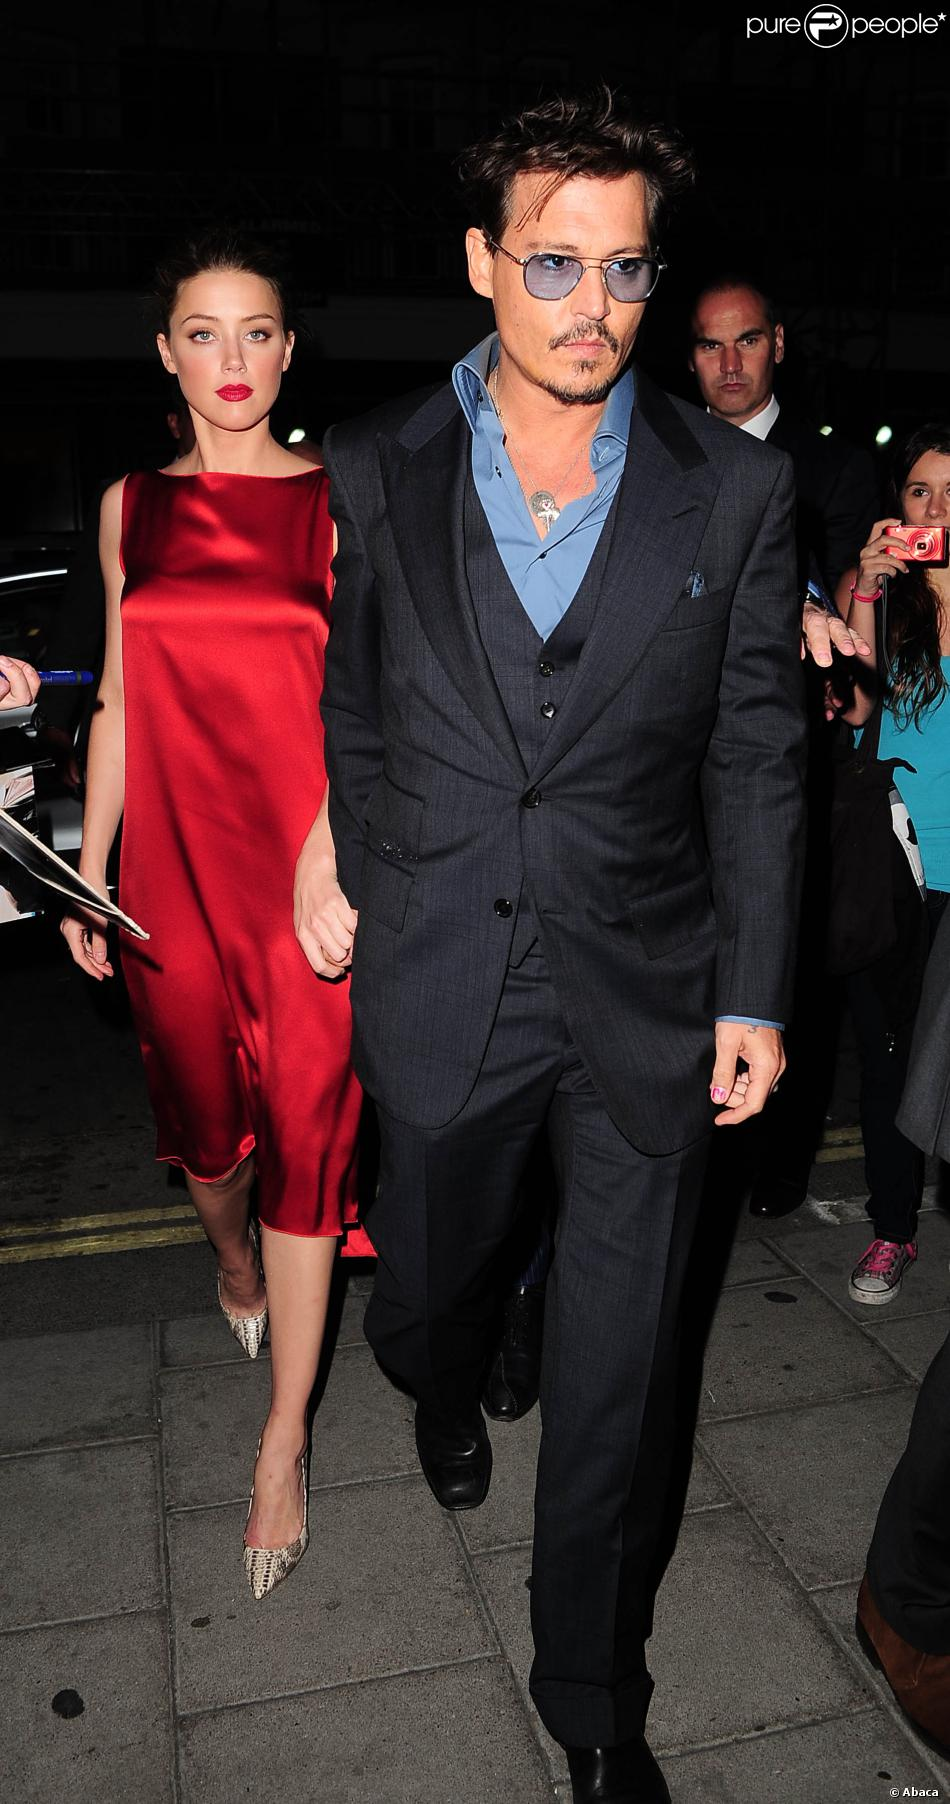 Johnny Depp avec sa girlfriend Amber Heard au C Restaurant à Londres le 21 mai 2013.